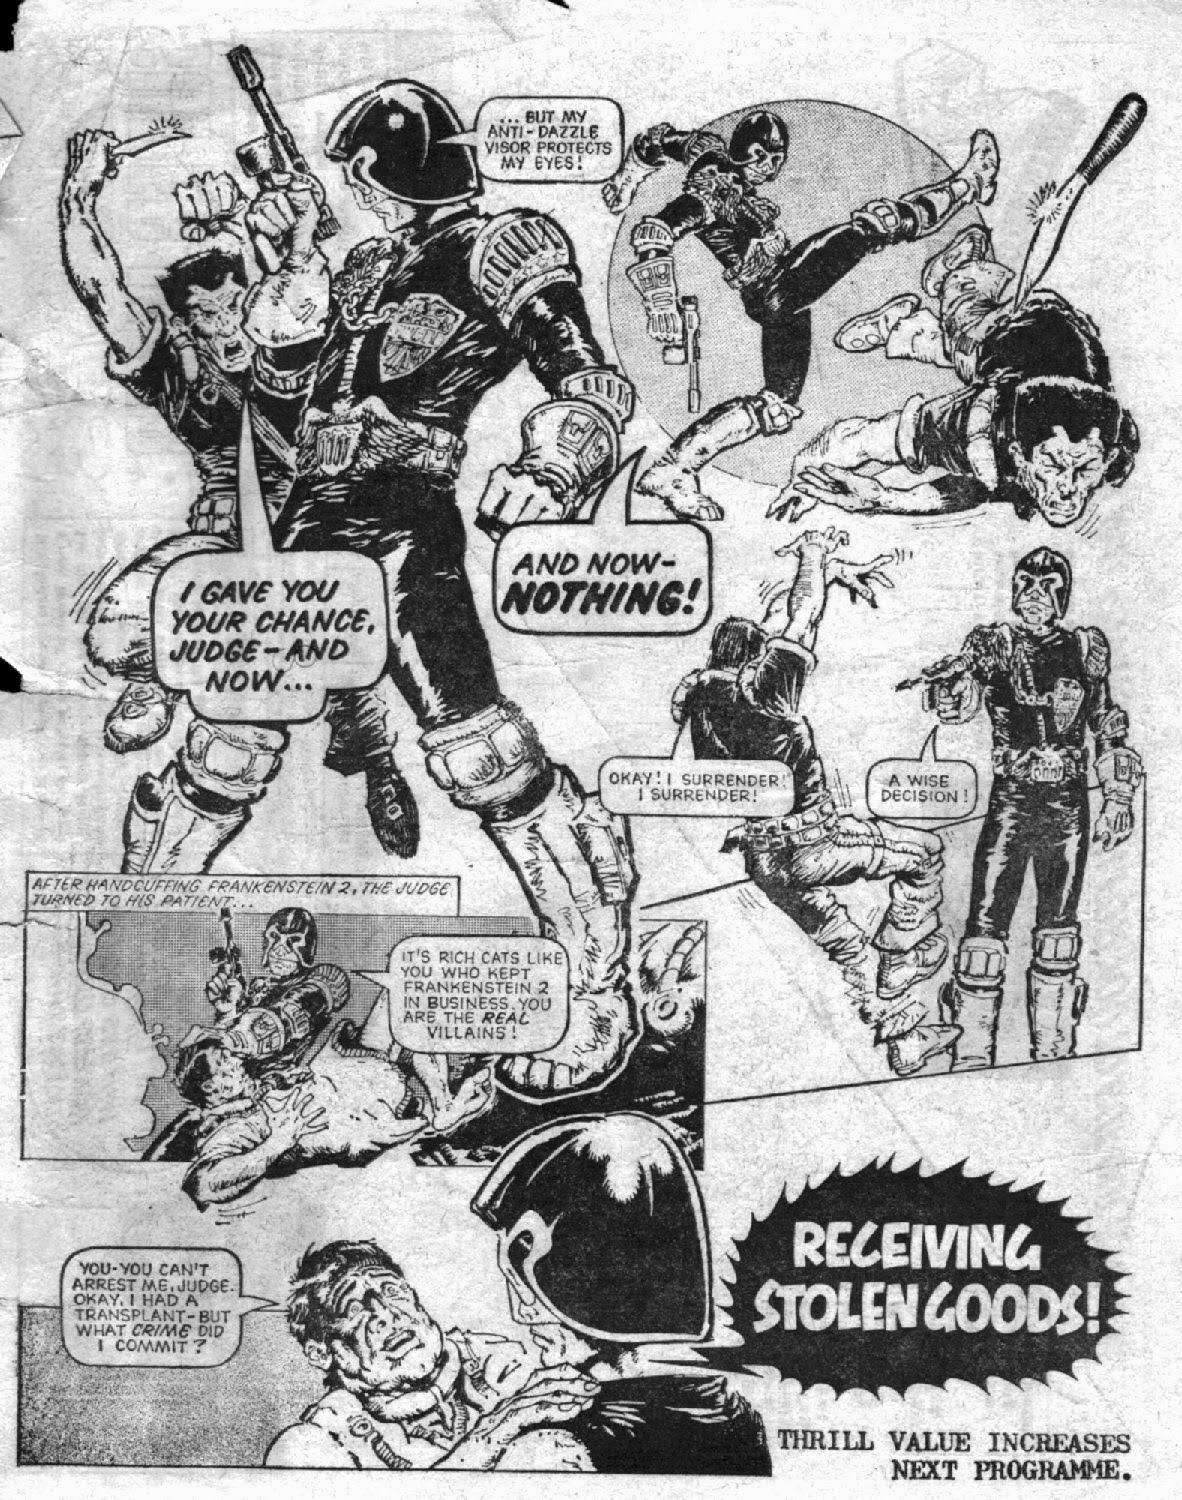 Figure 200: Judge Dredd Is Largely Unreceptive To Requests For Leniency Or  Mercy (written By Malcolm Shaw, Art By Mike Mcmahon, 2000